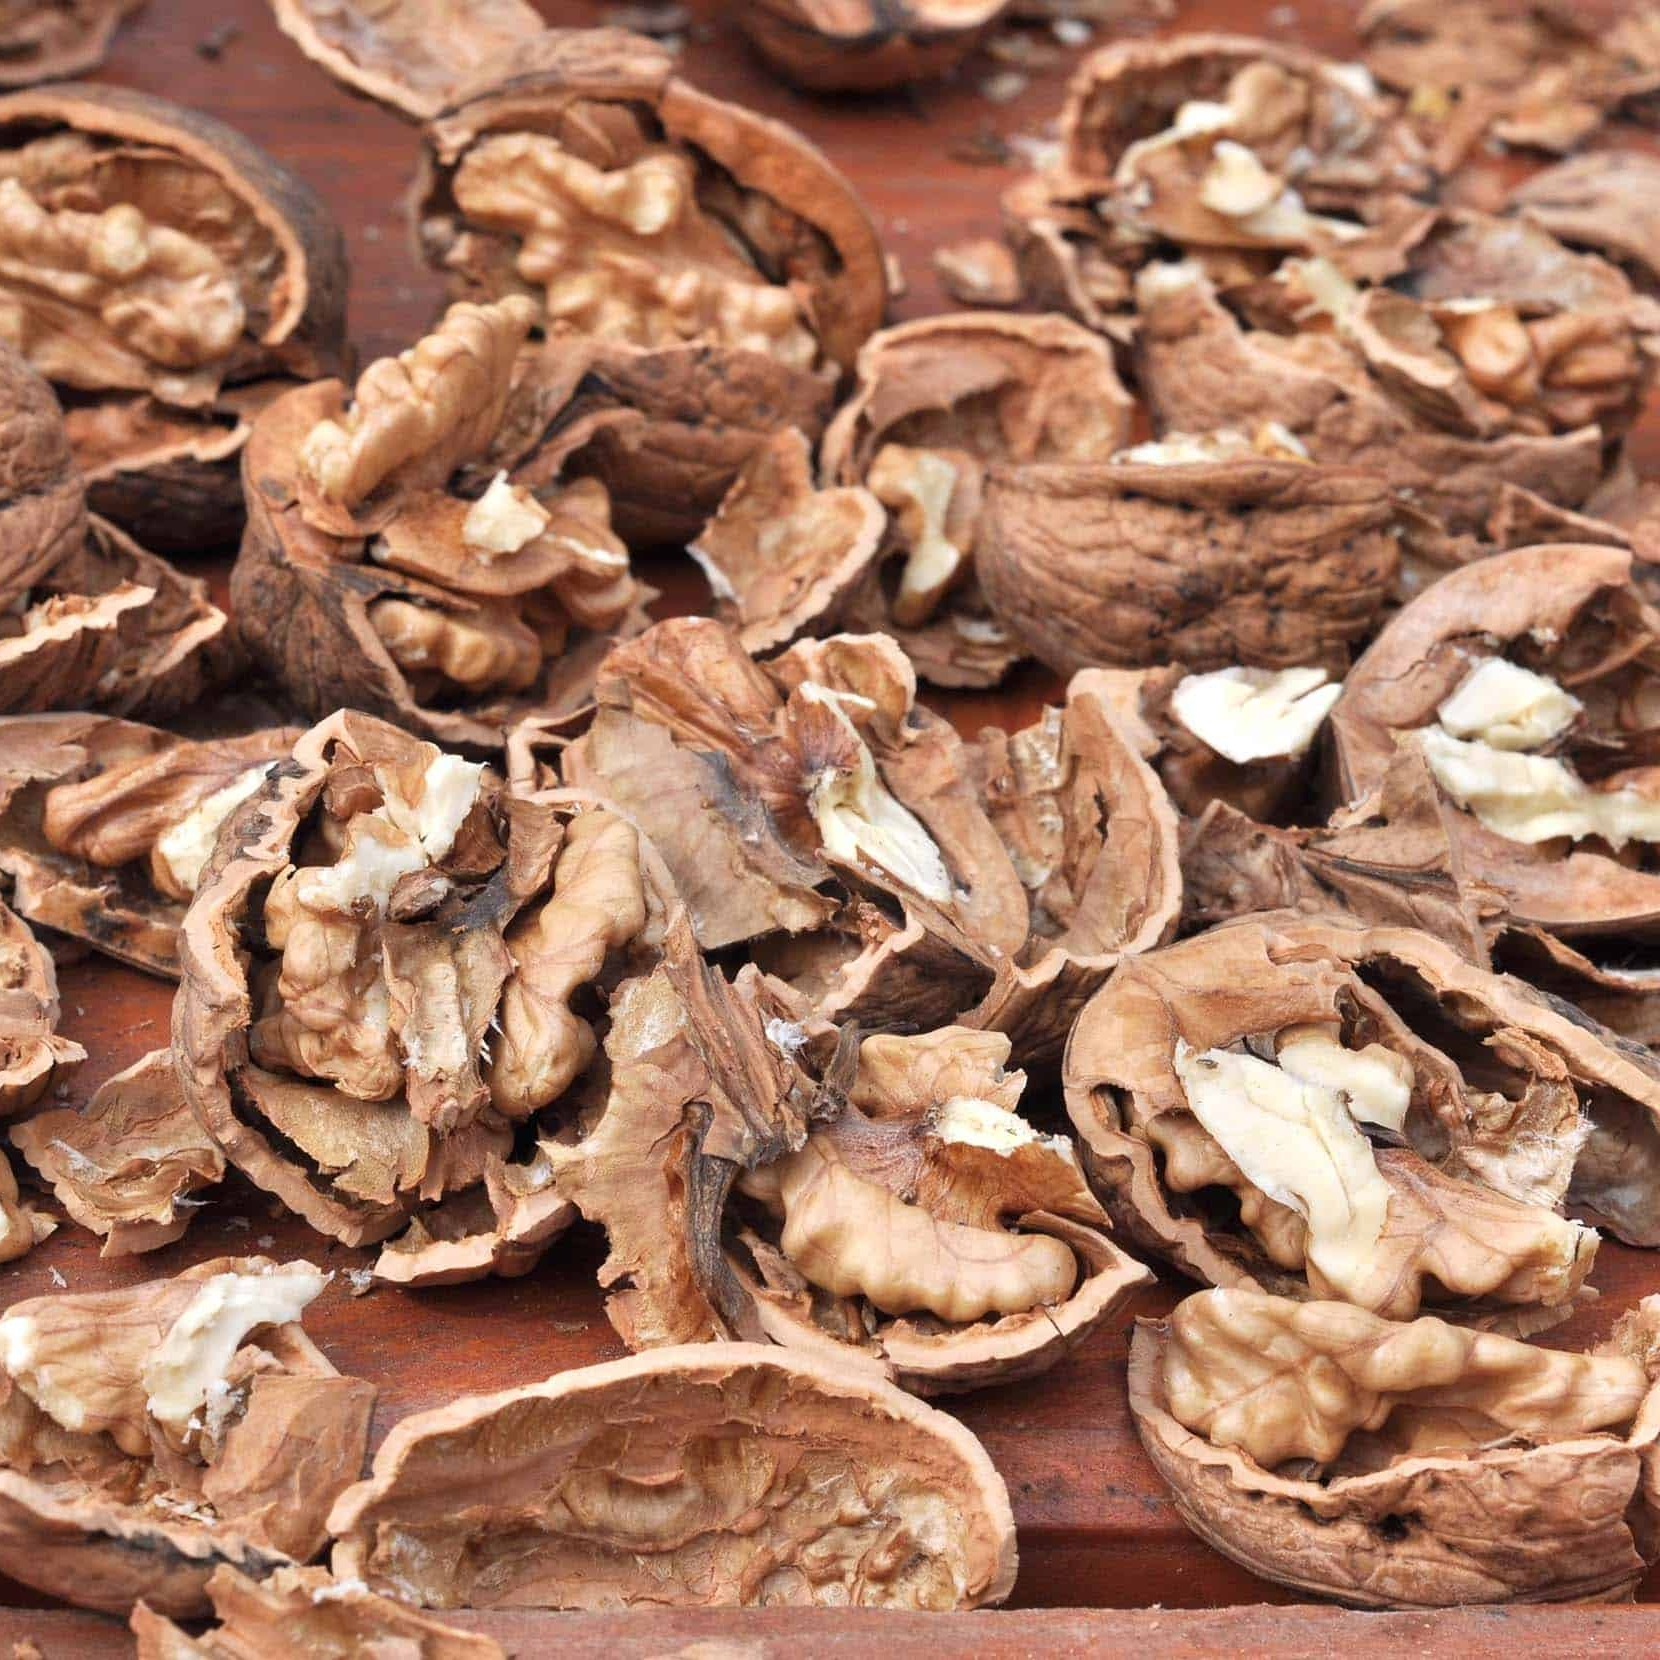 Once broken down, walnut shells can be used as well. -